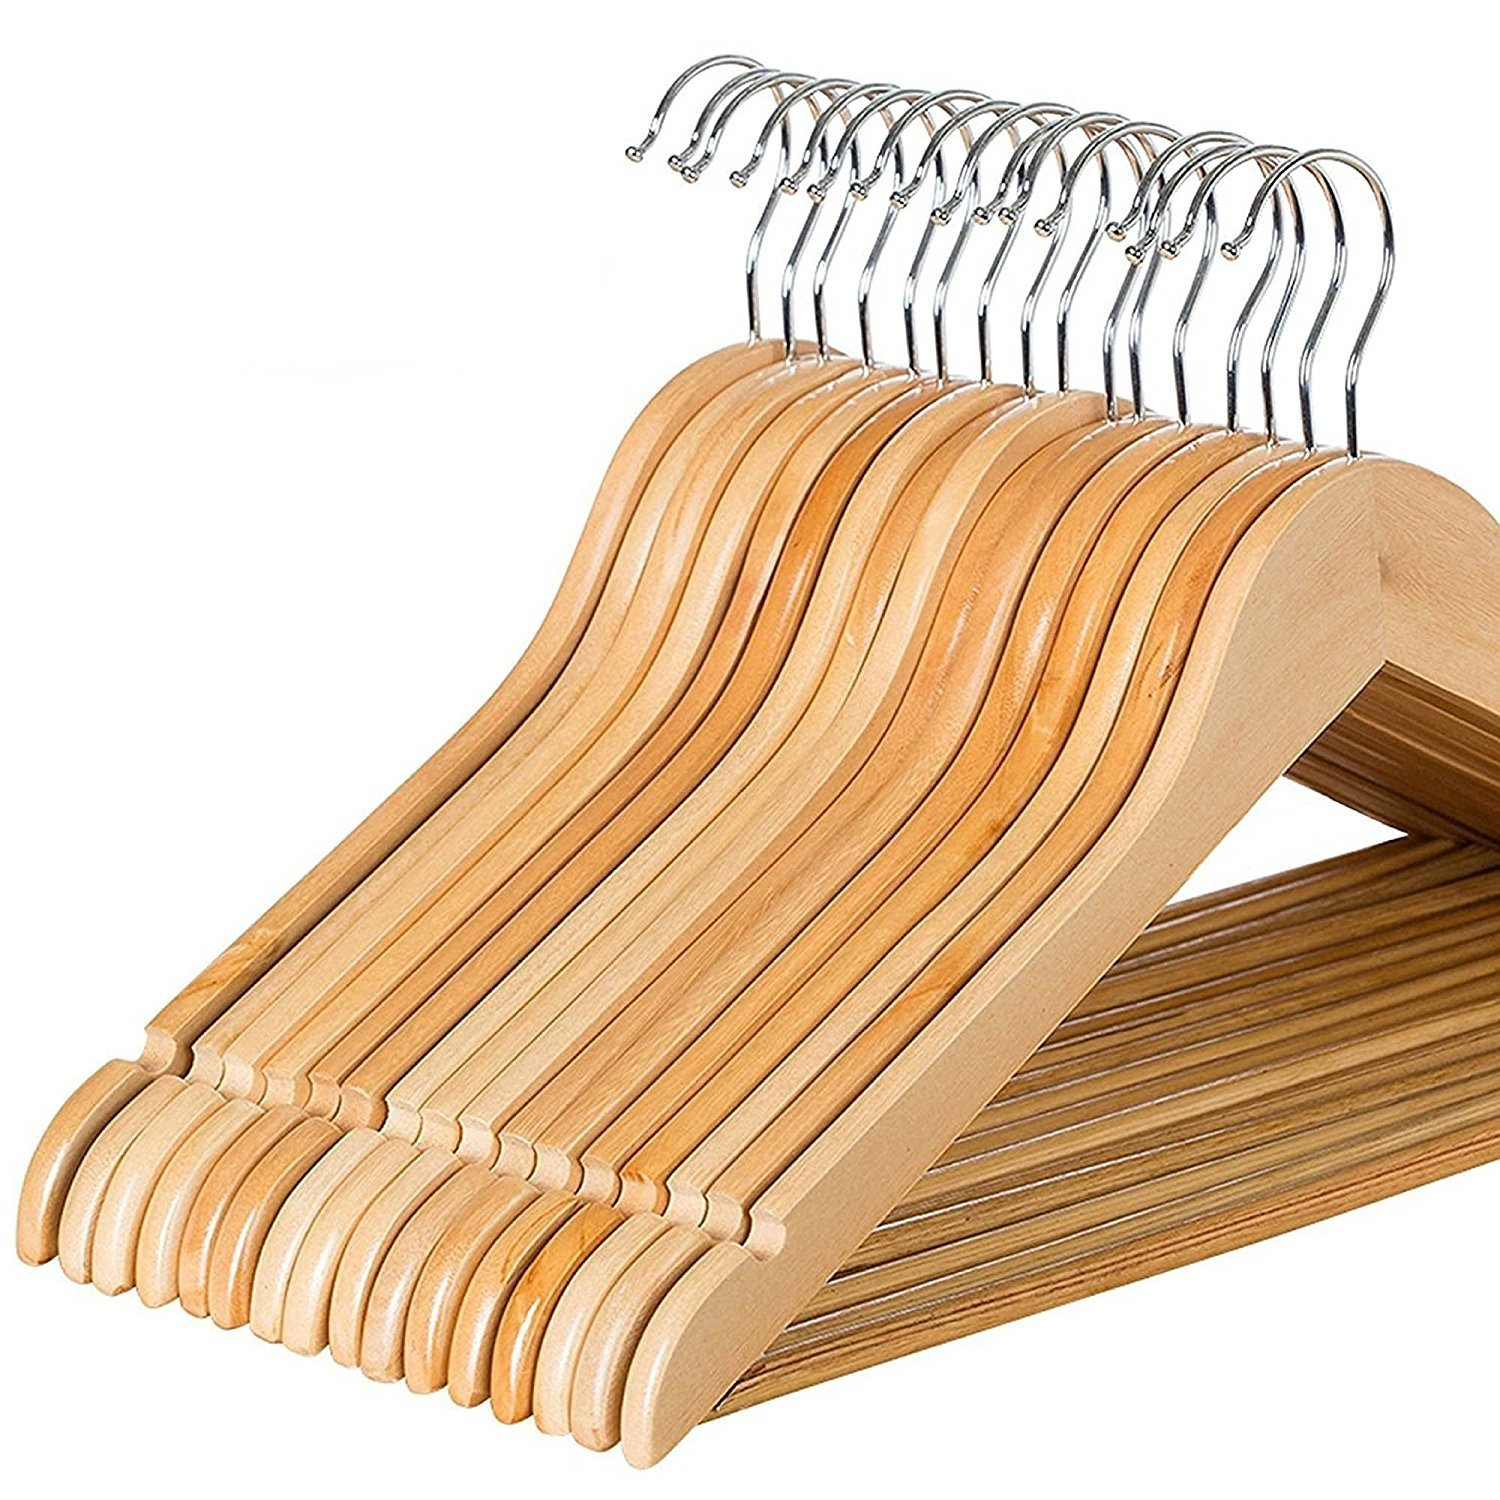 Zober Solid Wood Suit Hangers 20 Pack With Non Slip Bar And Precisely Cut Notches 360 Degree Swivel Chrome Hook Natural Finish Super Sturdy